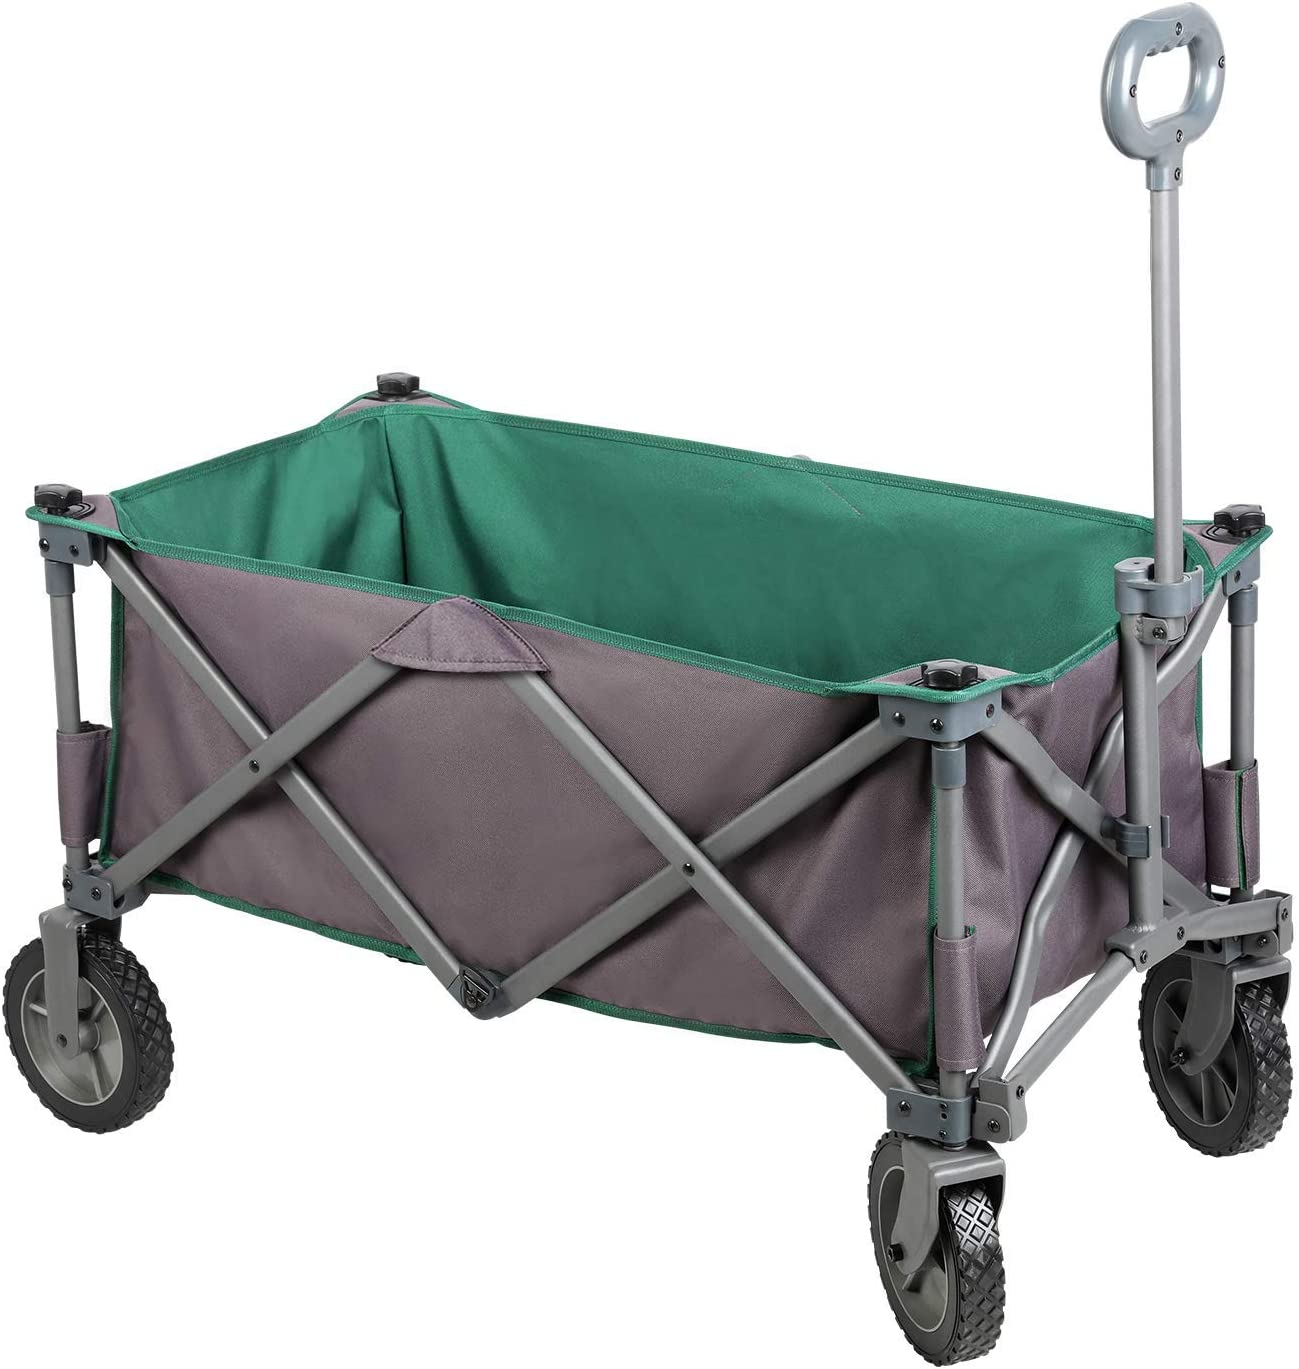 PORTAL Collapsible Folding Utility Wagon Quad Compact Outdoor Garden Camping Cart with Removable Fabric, Support up to 225 lbs Grey Green